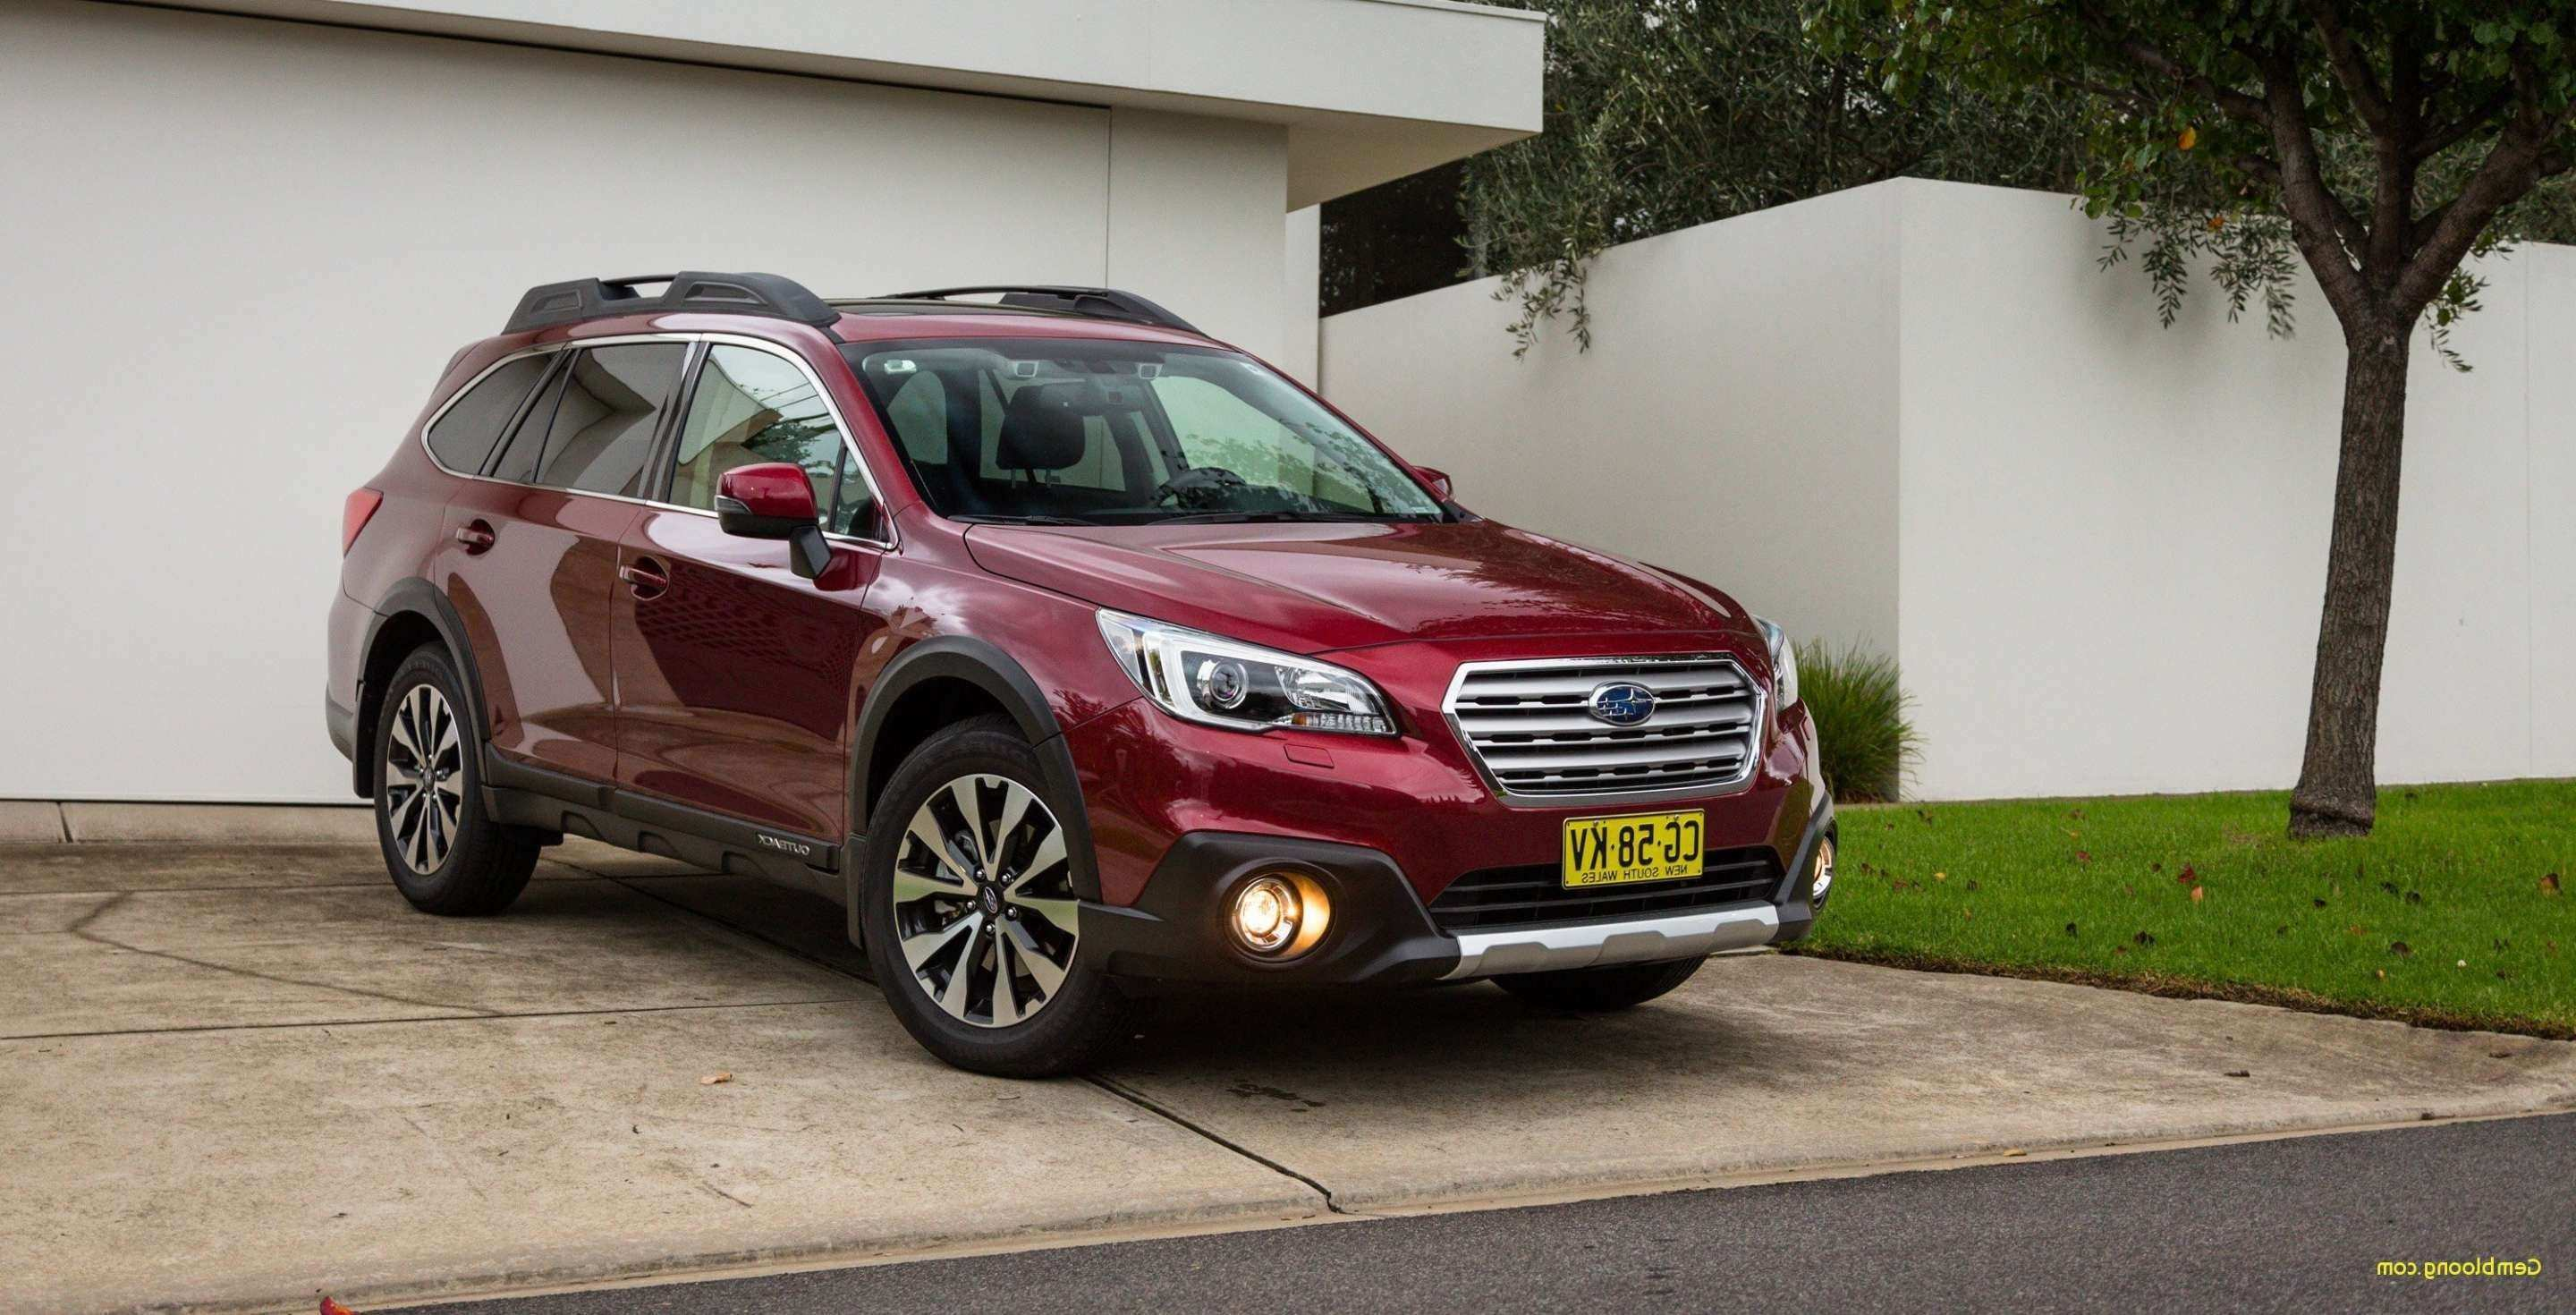 58 All New Subaru Outback 2020 Uk Speed Test